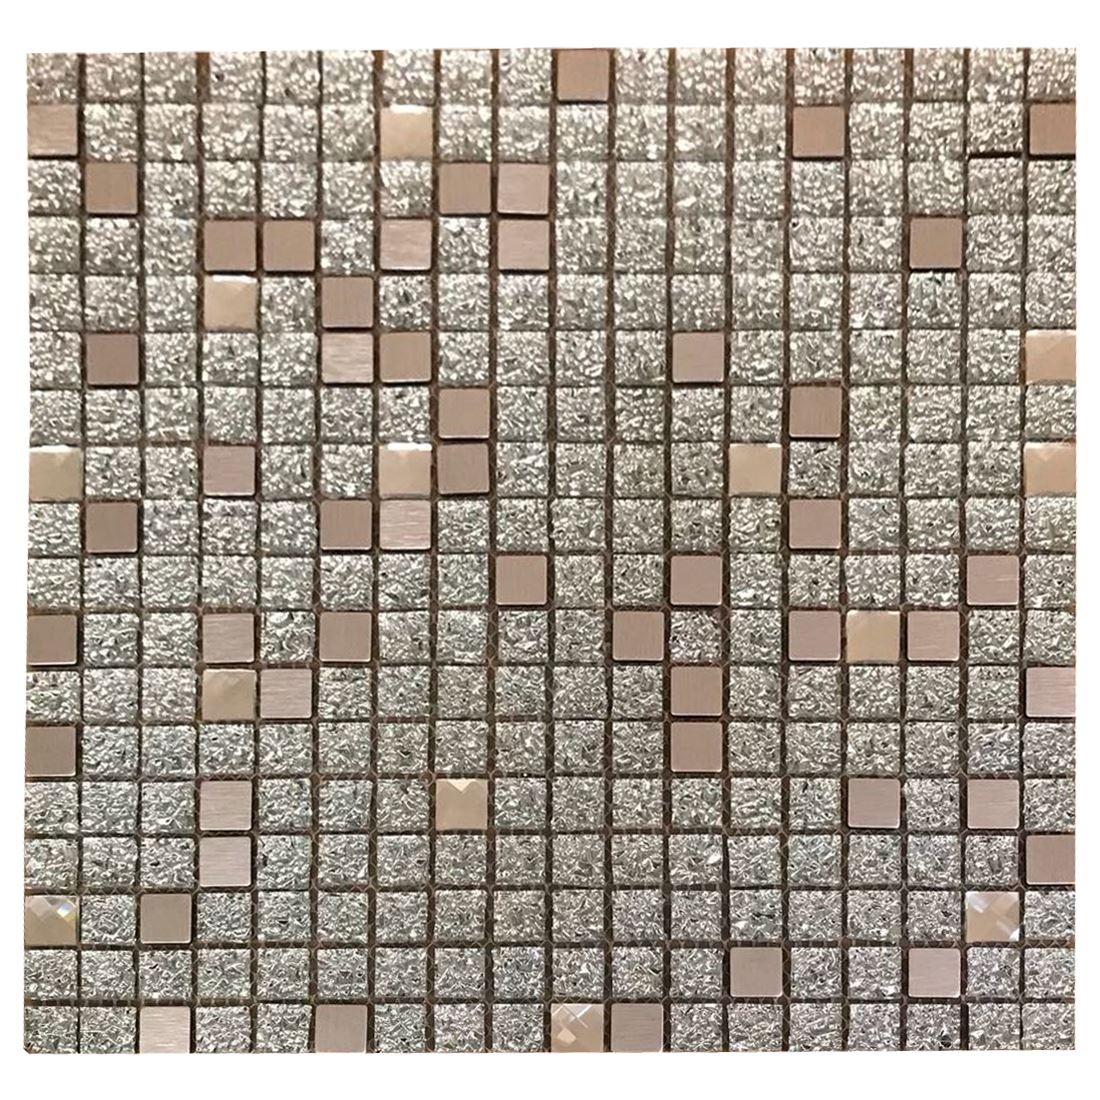 New Arrival Imported Designer Wall Tile 300x600mm: Aluminum Crystal Glass Square Mosaic Tiles Sheet Walls